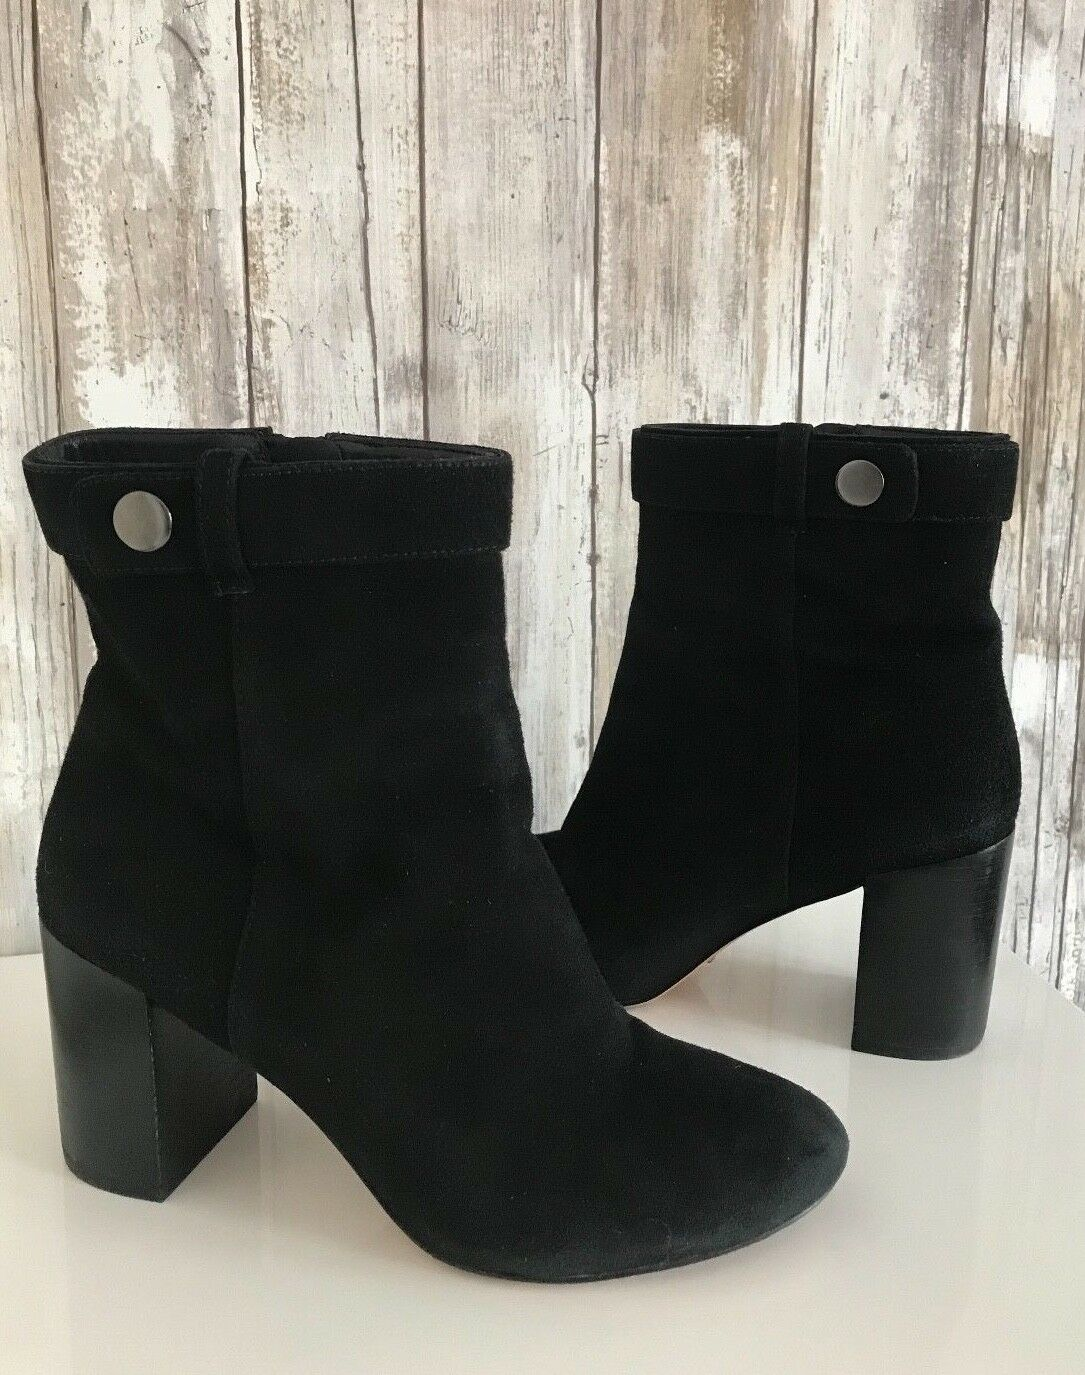 295 Pour La Victoire Danya Black Suede Chunky Heels Ankle Boots 6.5 RARE